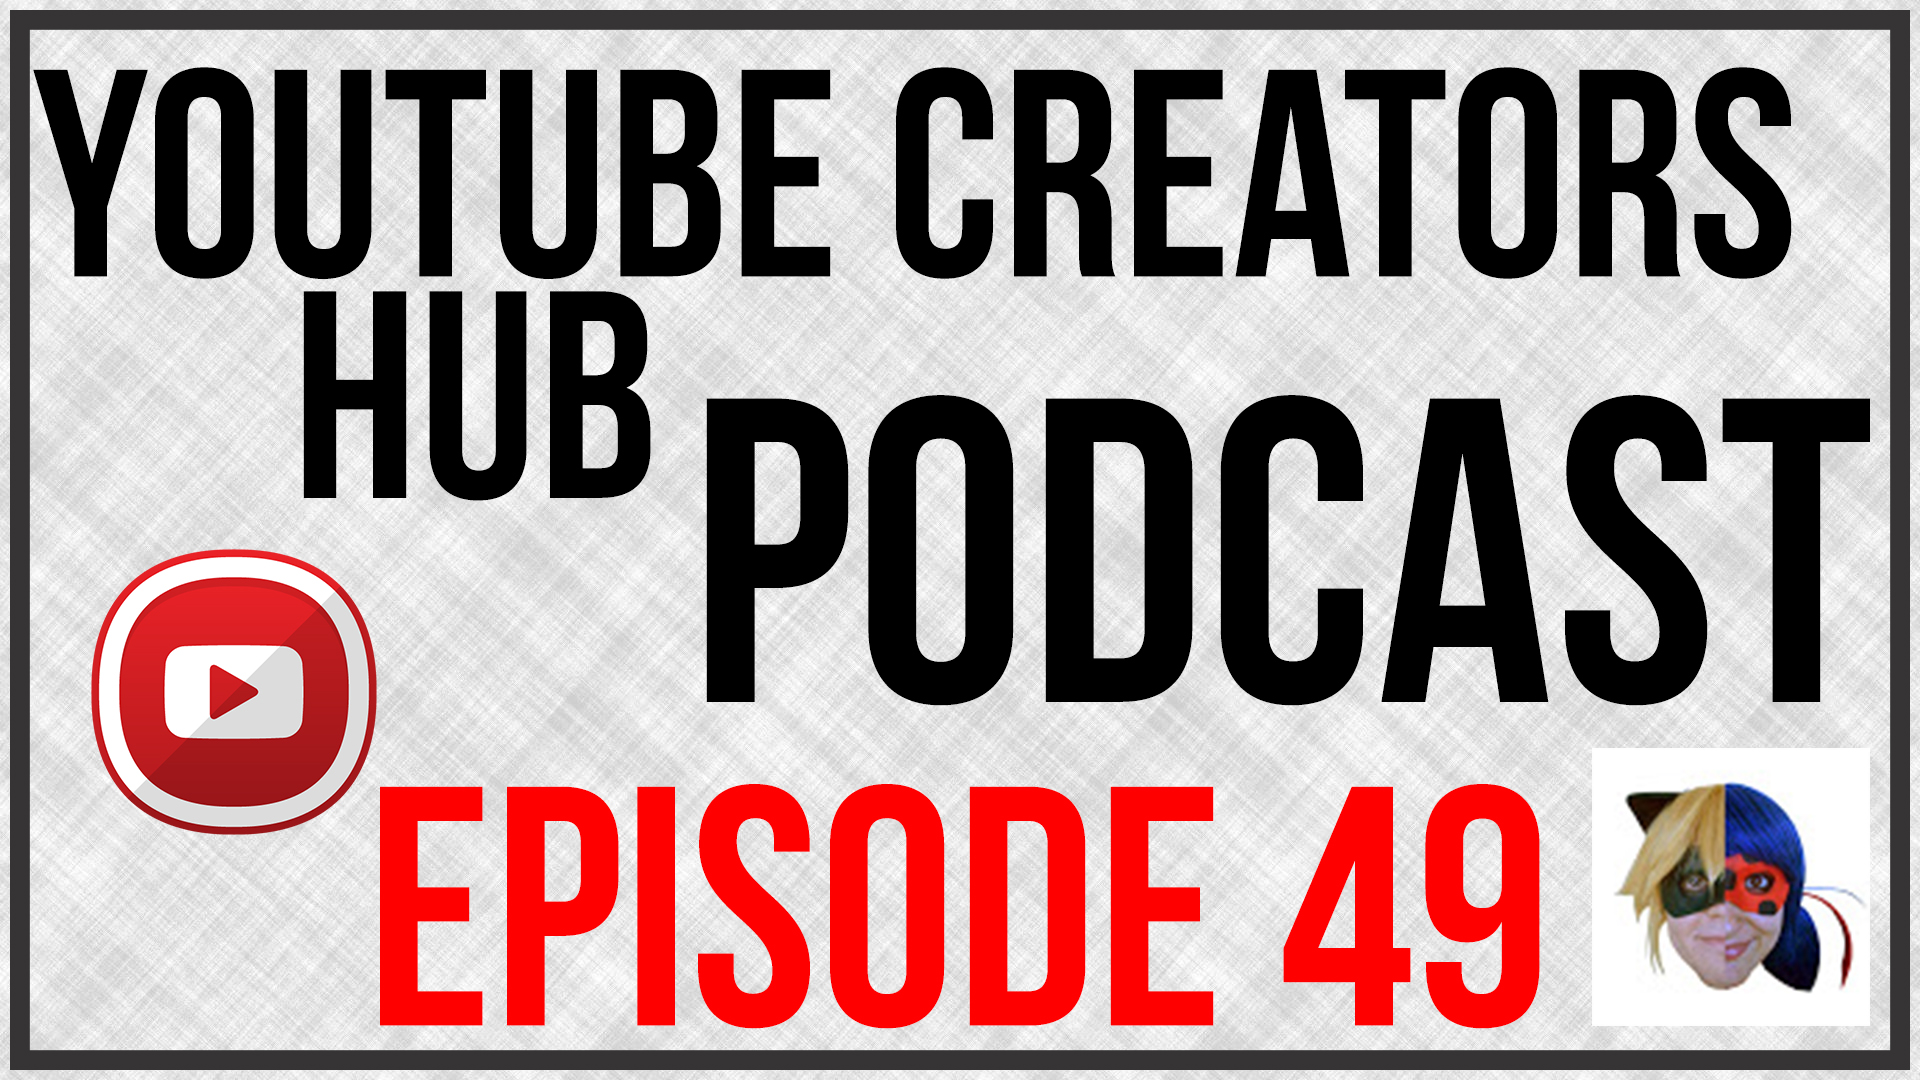 Youtube Creators Hub Podcast Episode 49